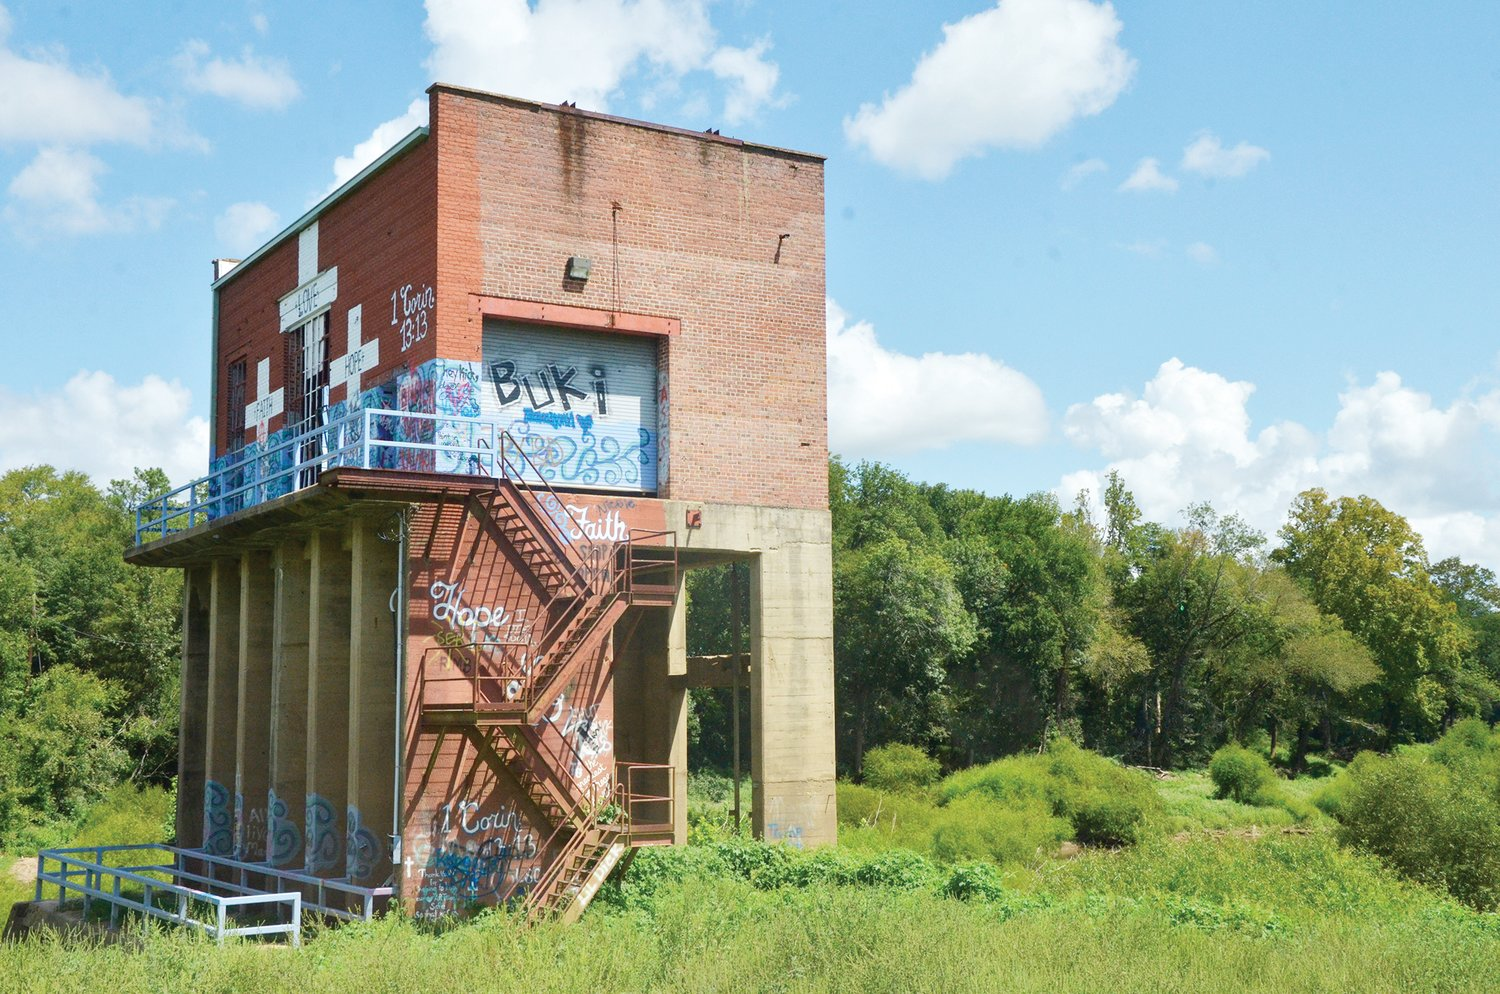 The old power generator building for the Carbonton Dam sits on an outcropping beside the river. Once the main power source for Carbonton, it was abandoned after a new structure was built to power Moncure and surrounding communities.The building left behind is now an artists' canvas.